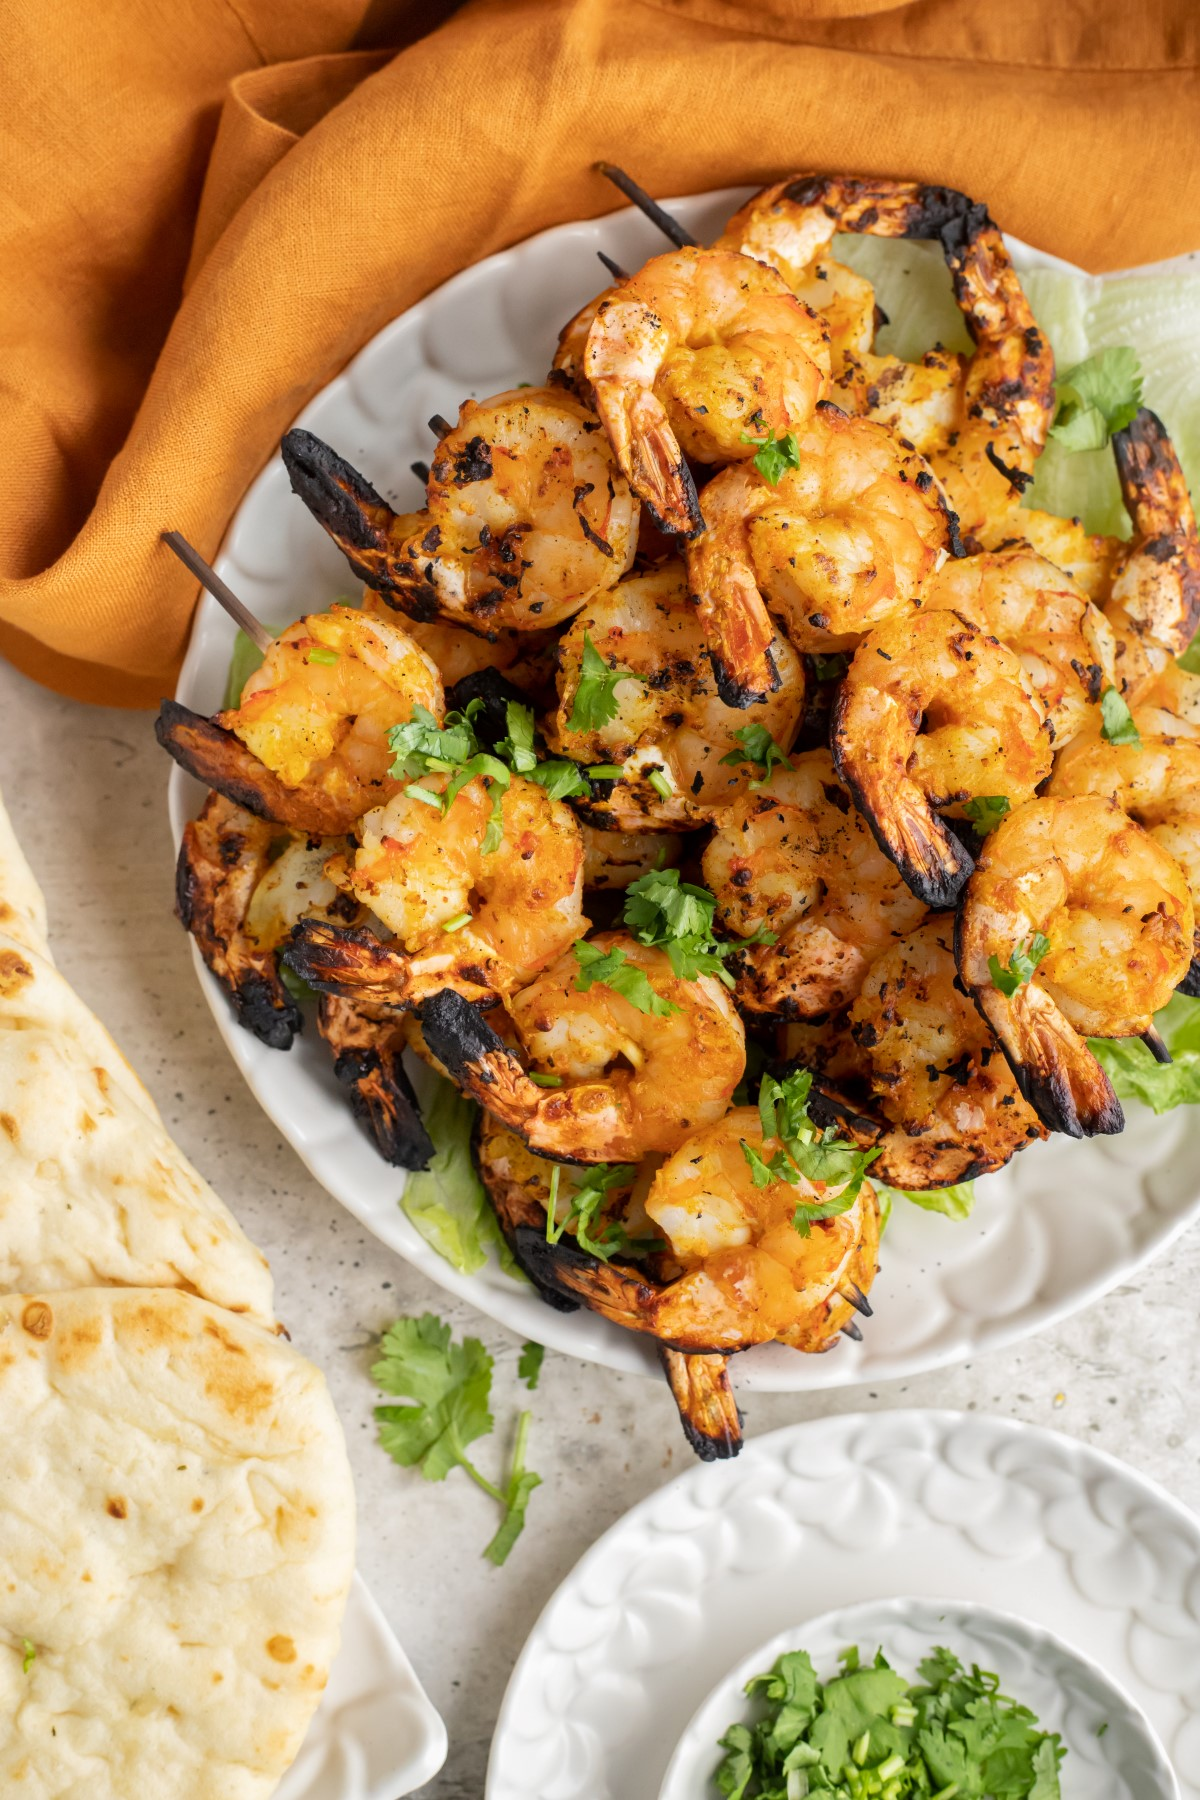 Grilled Tandoori Shrimp skewers on a white plate garnished with chopped parsley.